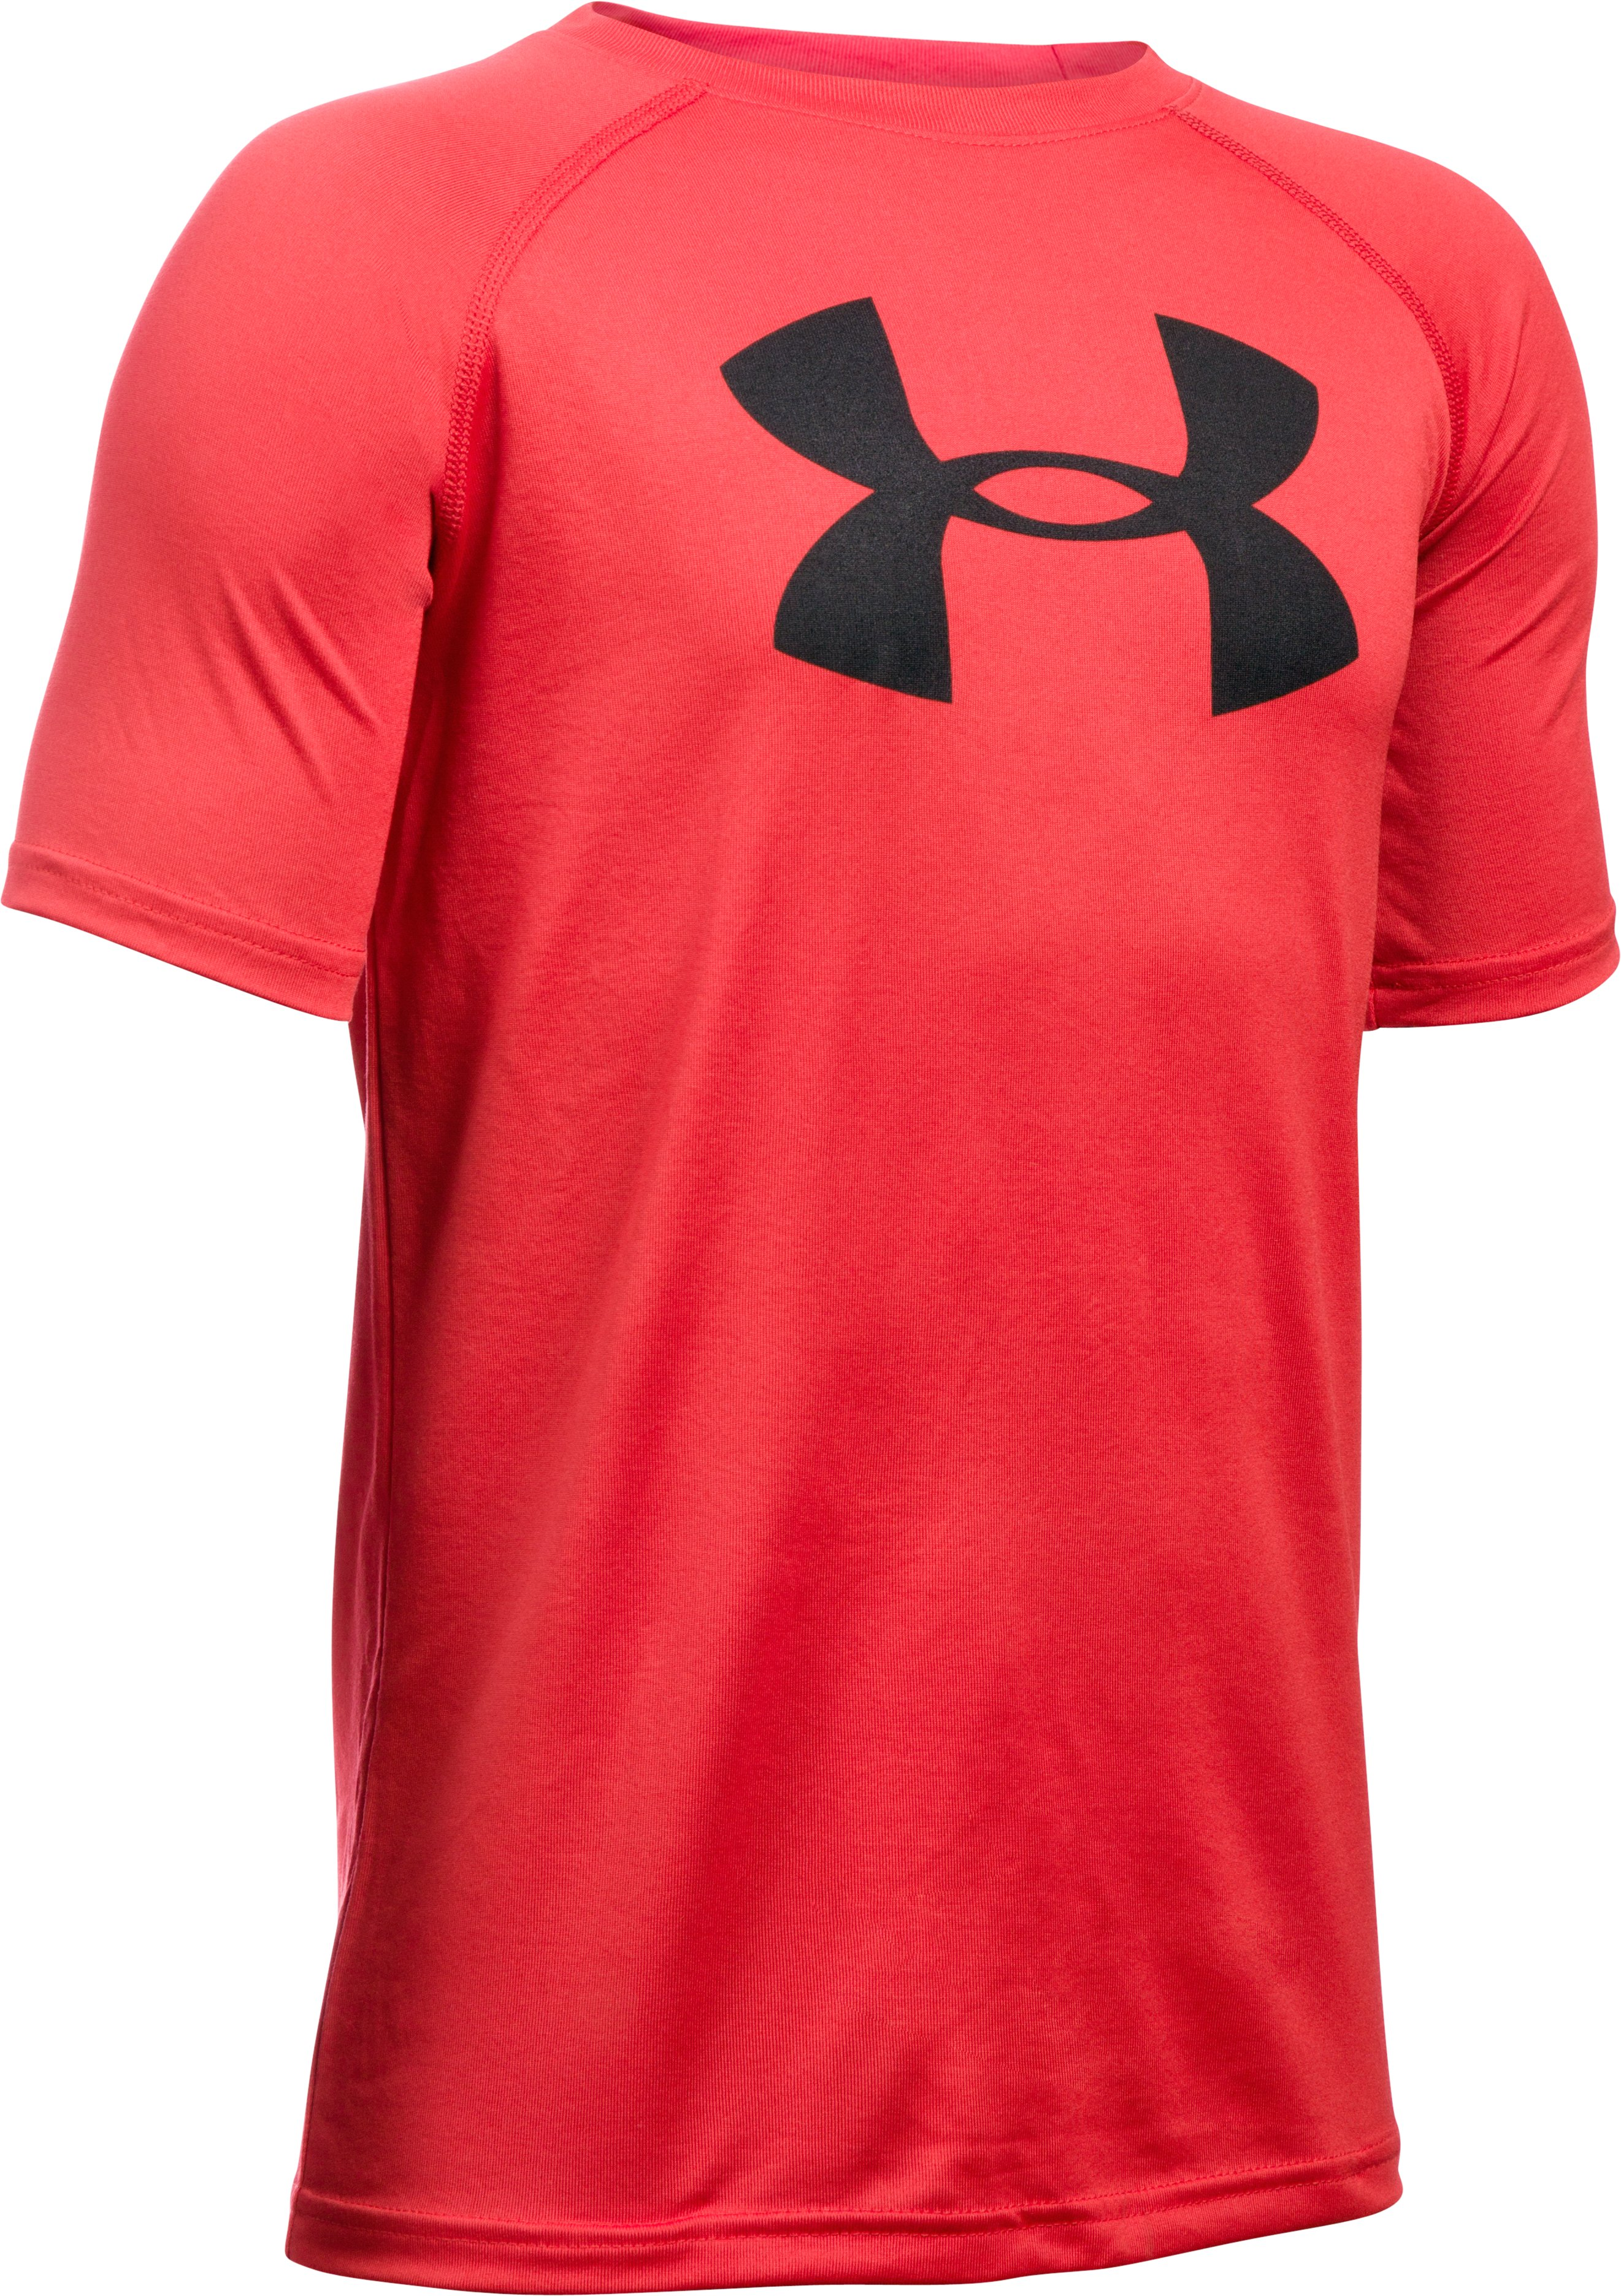 Boys' UA Tech™ Big Logo Short Sleeve T-Shirt, Red